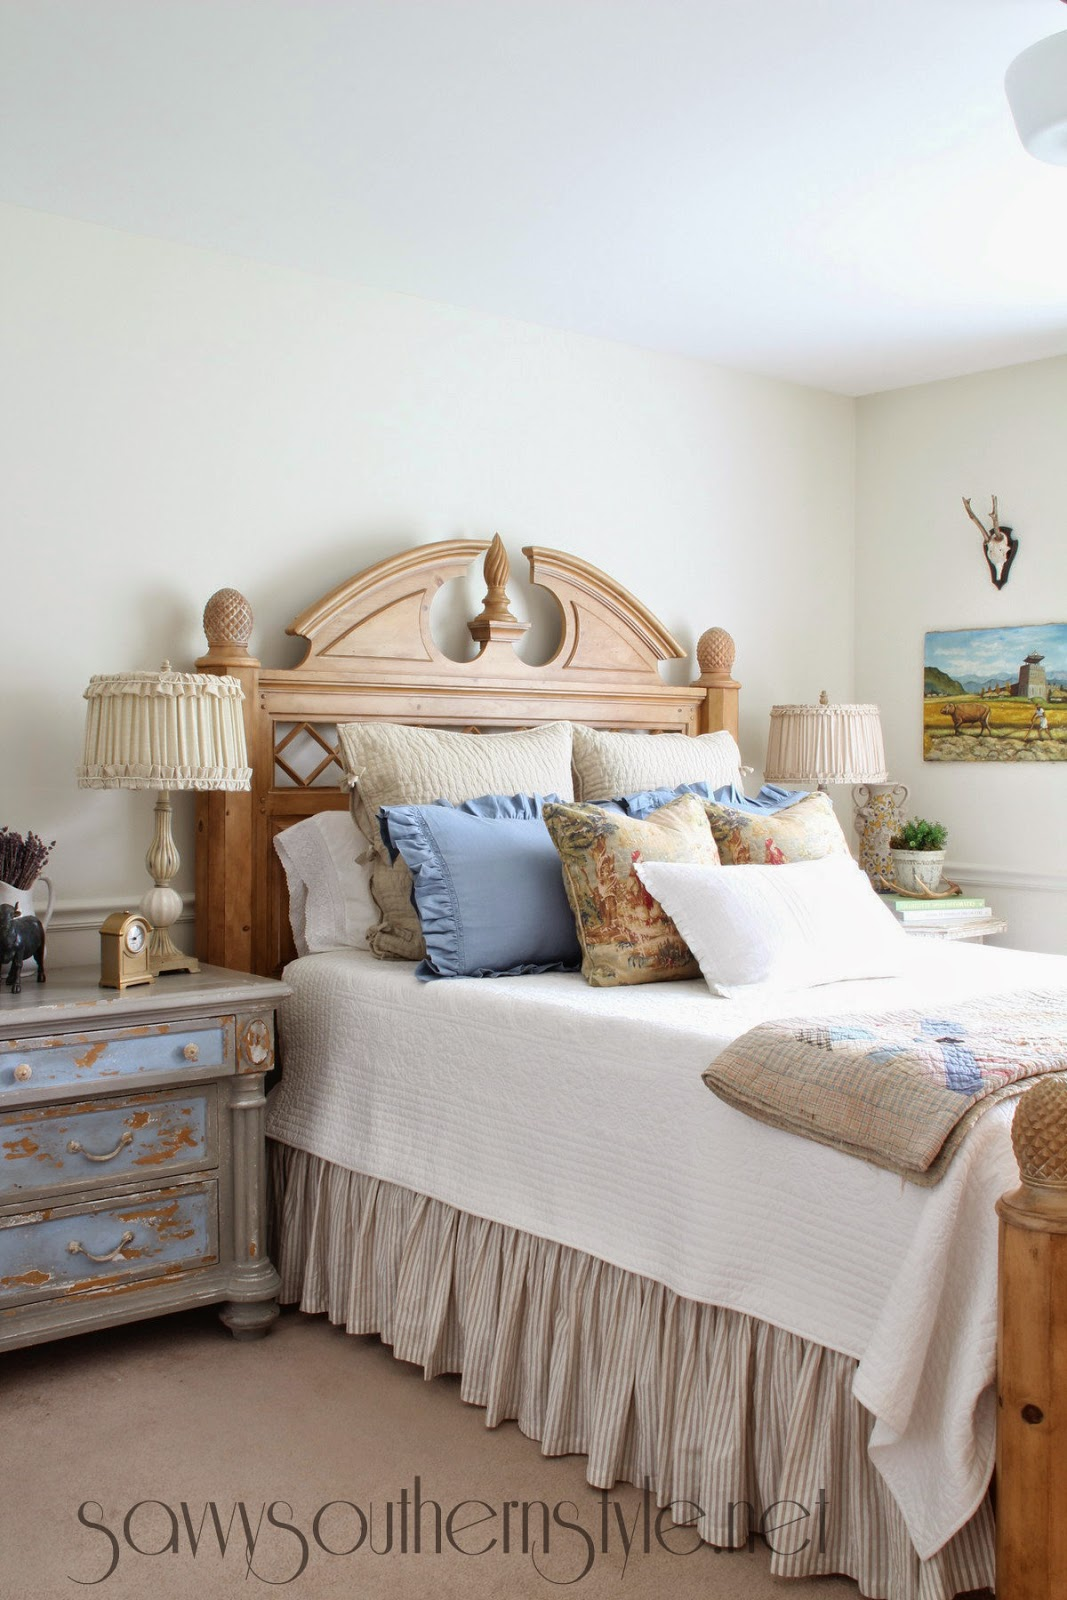 Savvy Southern Style : French Country Style Guest Room Reveal